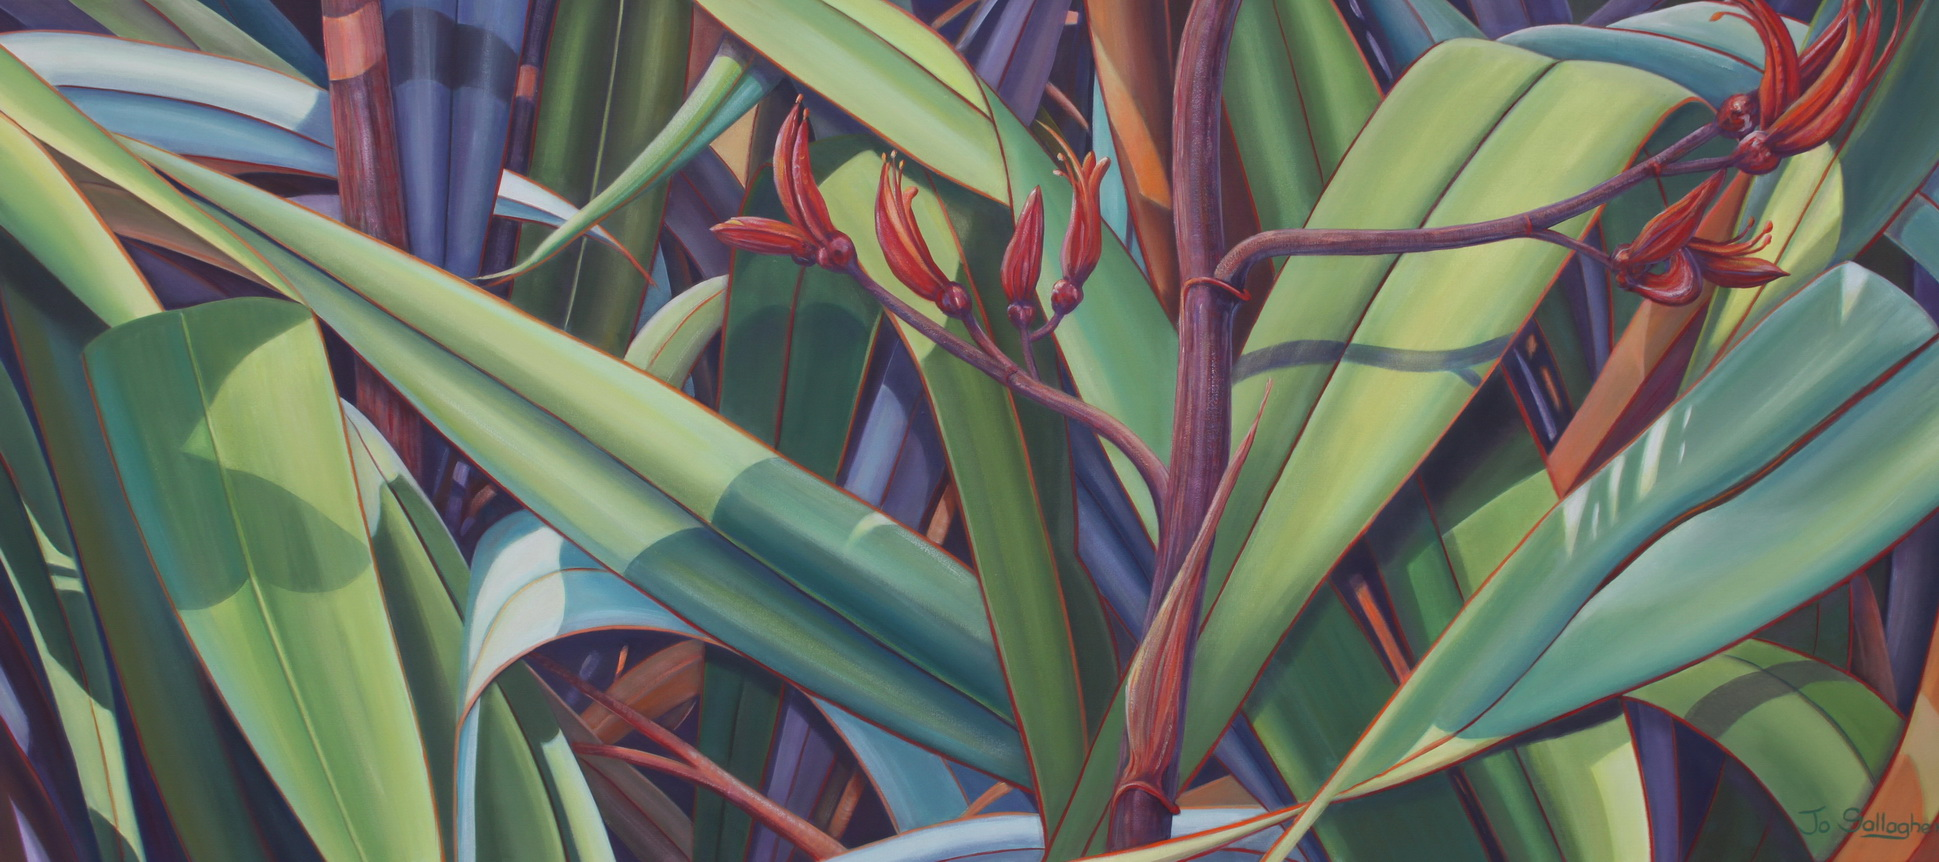 Woven Promise  acrylic on canvas 1350x610mm $2550.00  SOLD